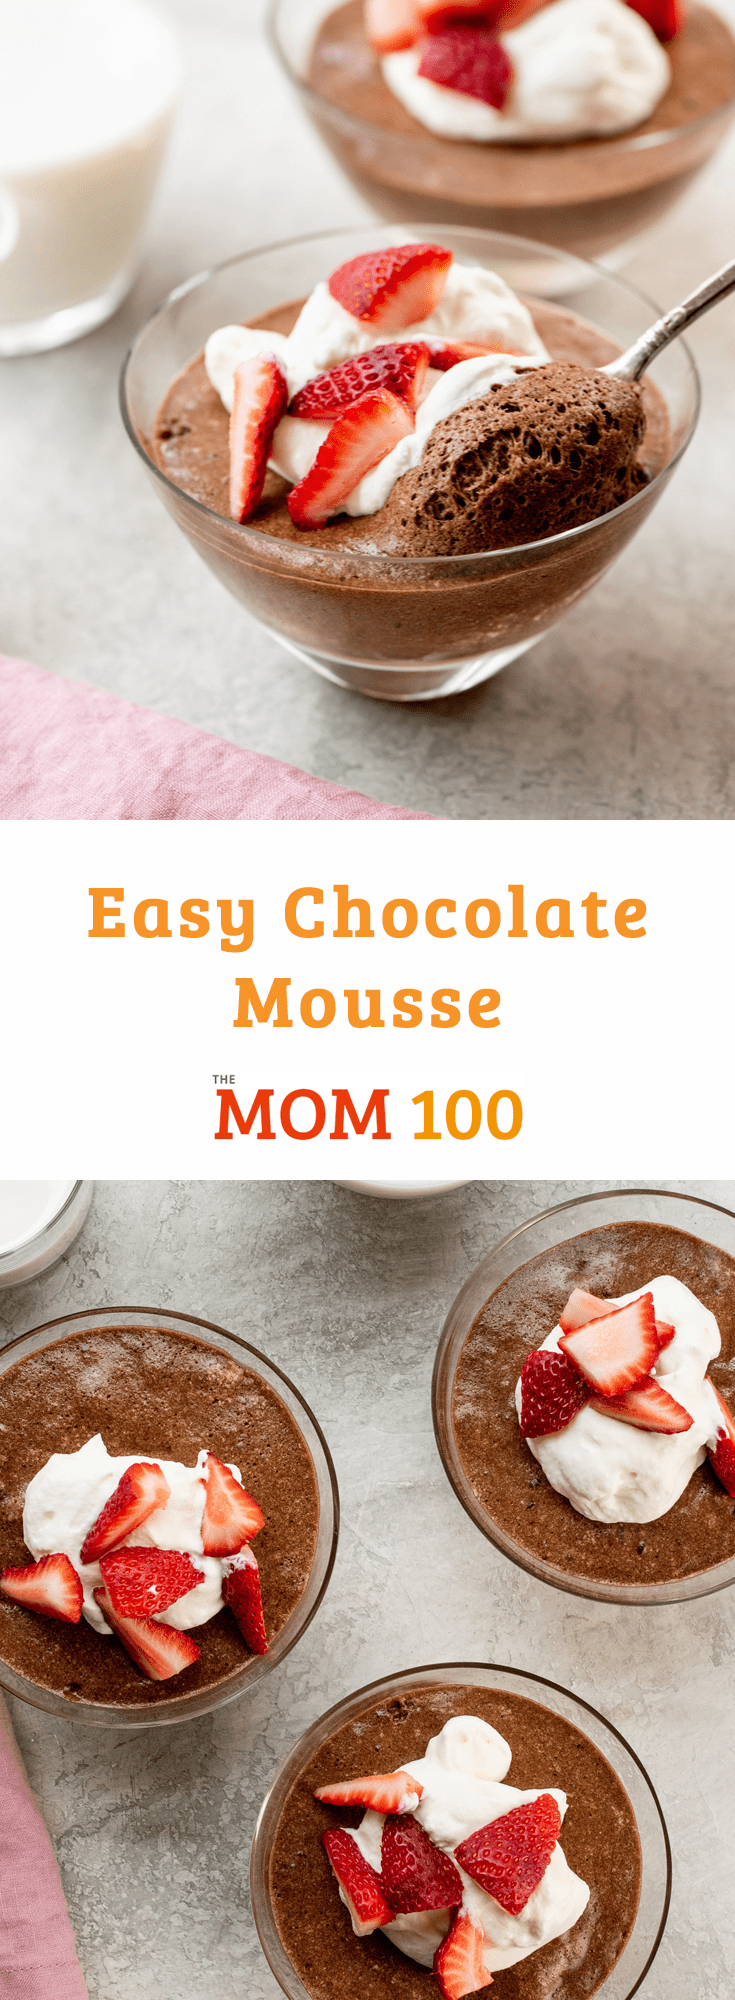 This Easy Chocolate Mousse with whipped cream is cool, creamy and seriously indulgent.